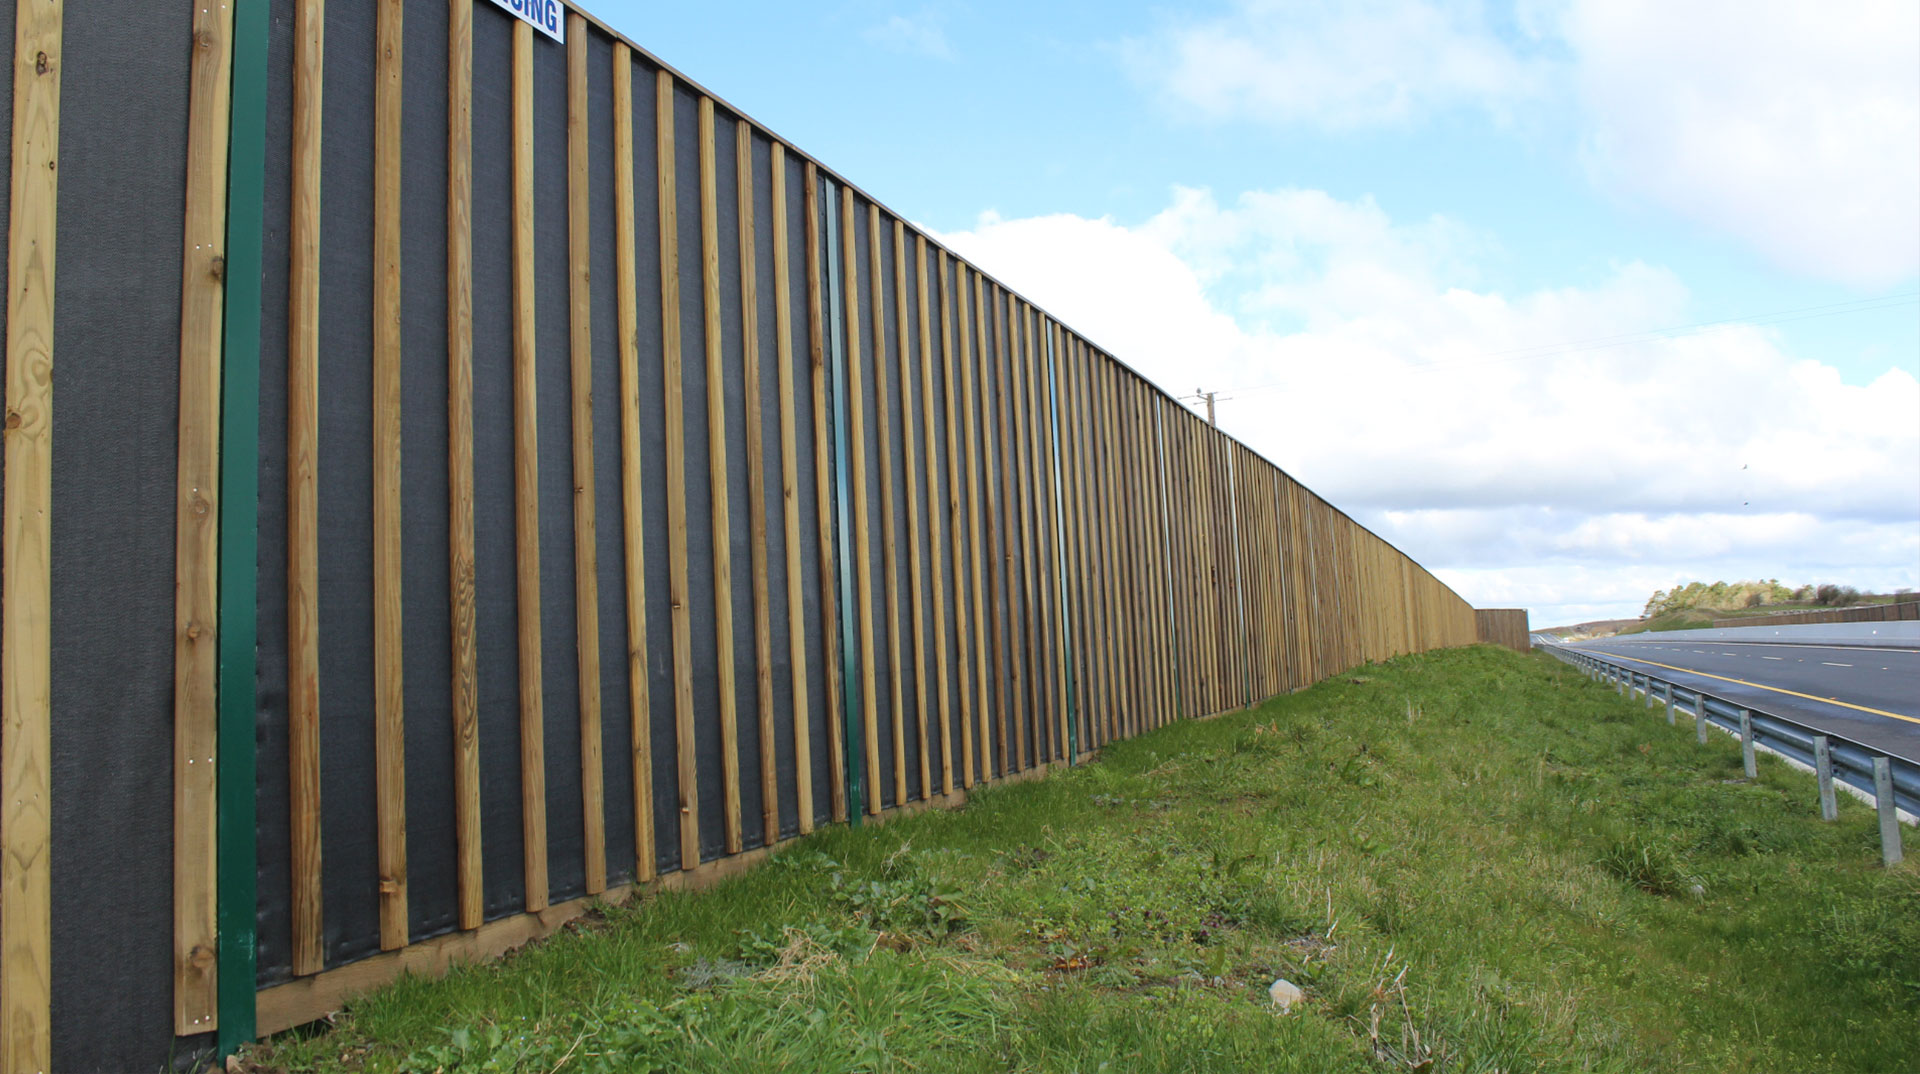 Mulligan Fencing A Large Scale Fencing Contractor